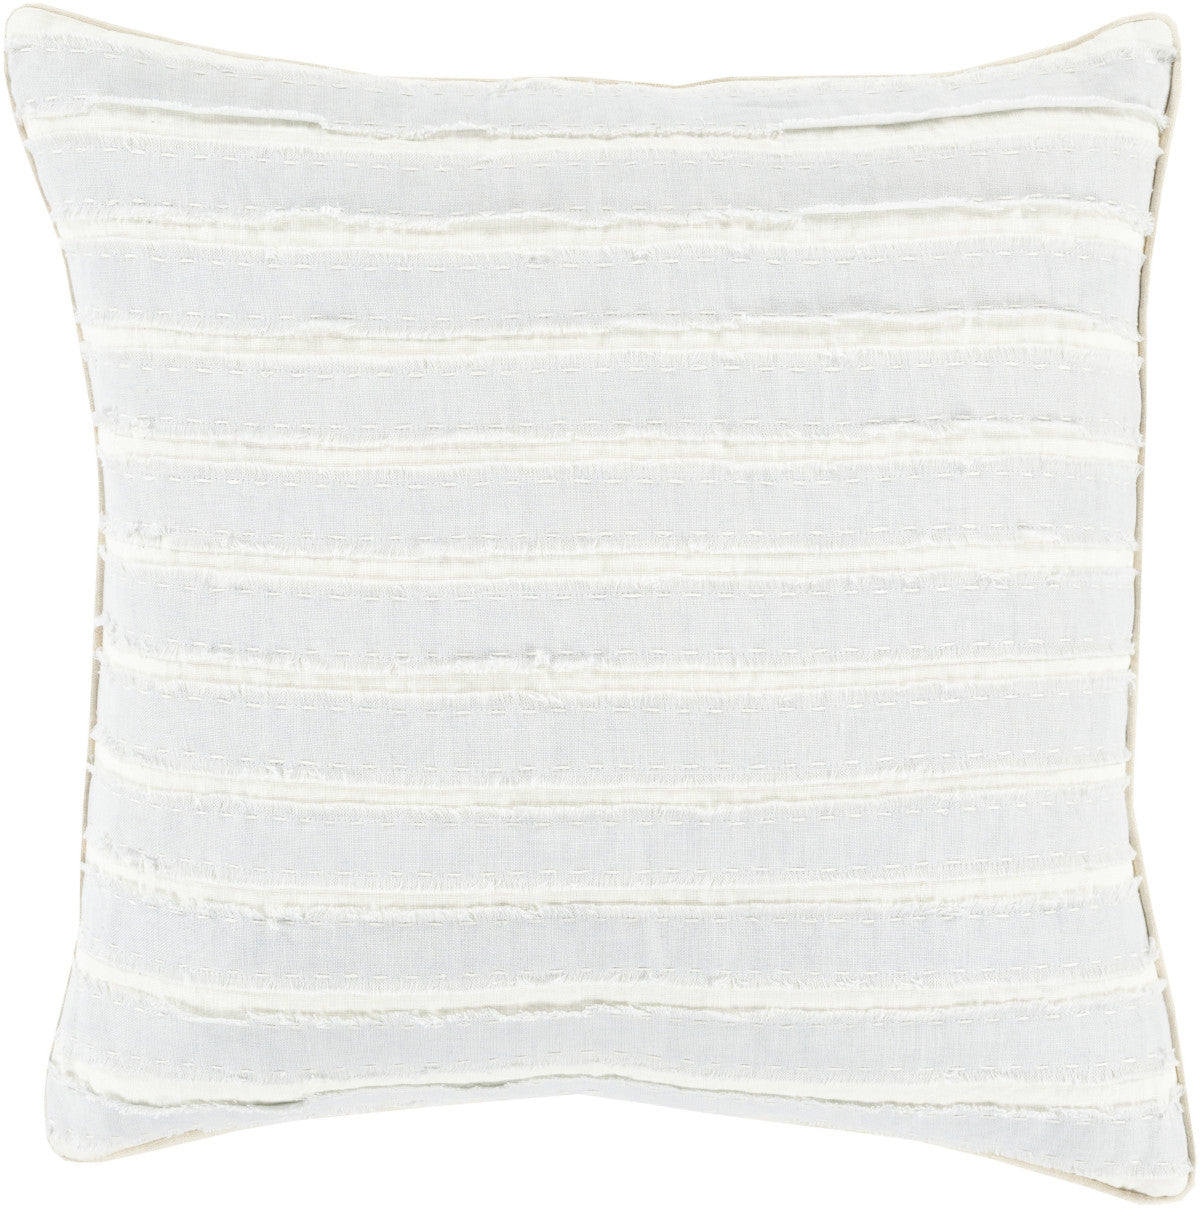 Surya Willow Charm and Comfort WO-003 Pillow